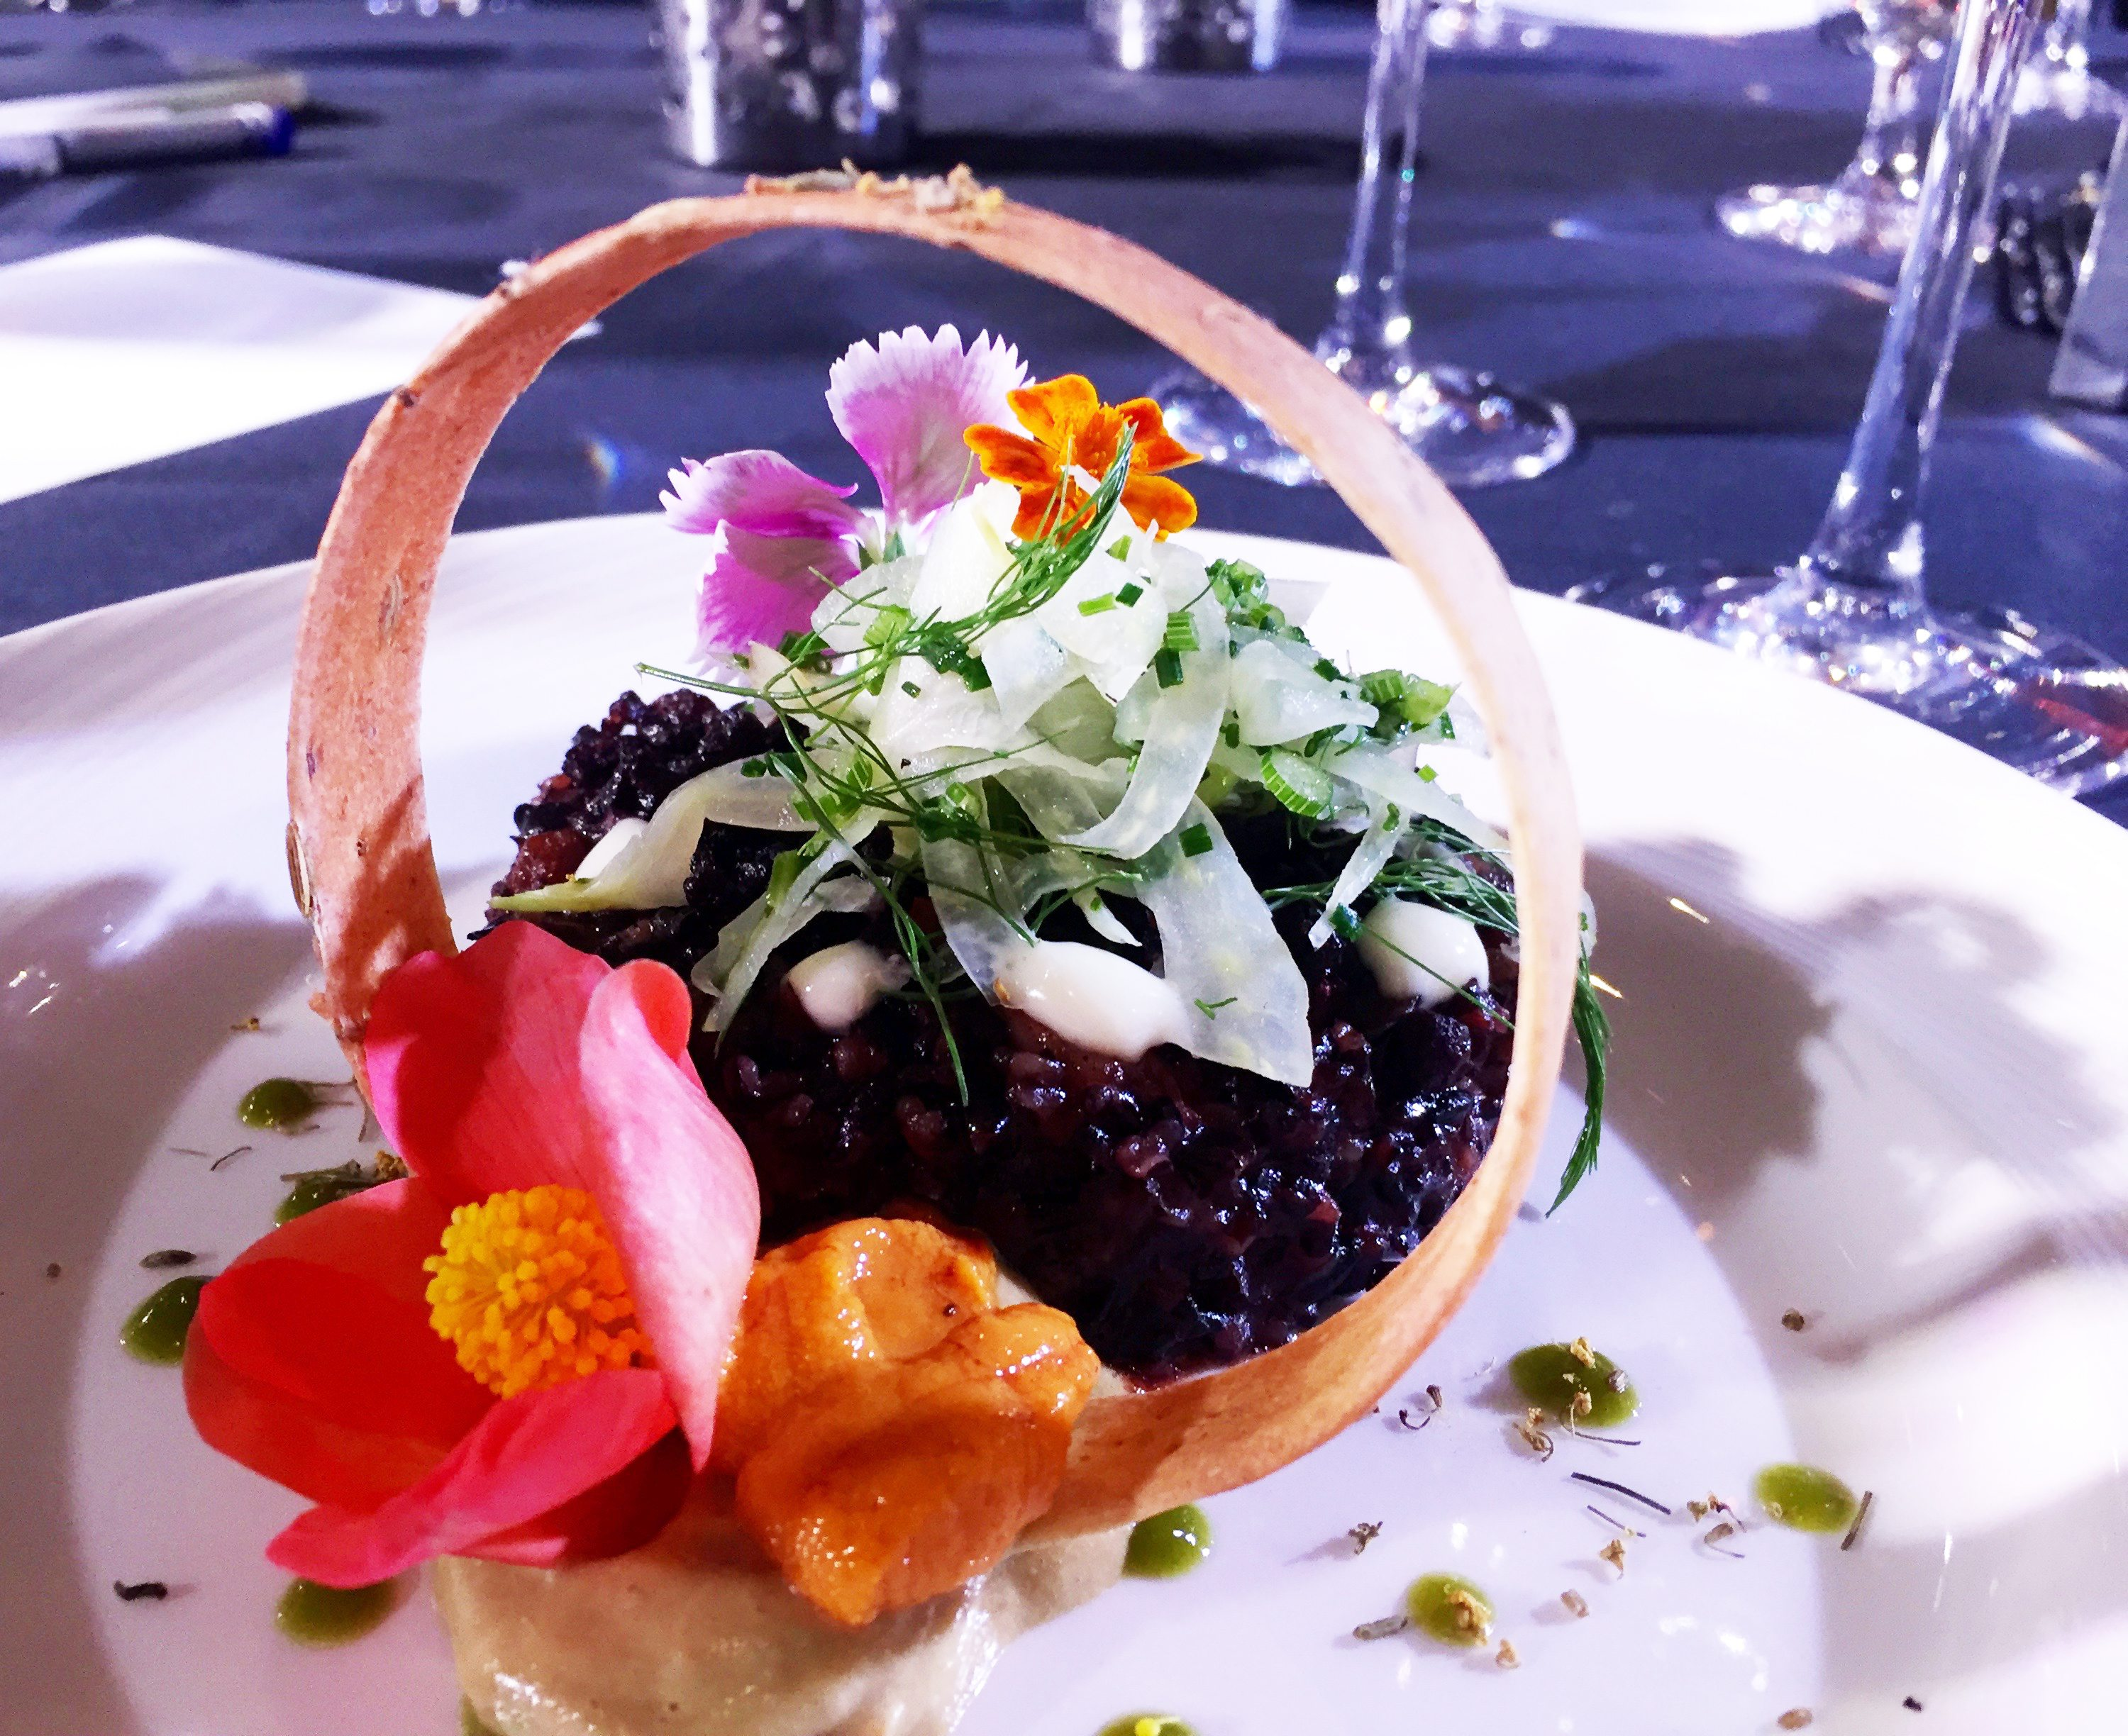 Chef Marc Doiron's unique risotto dish presented at the 2016 competition